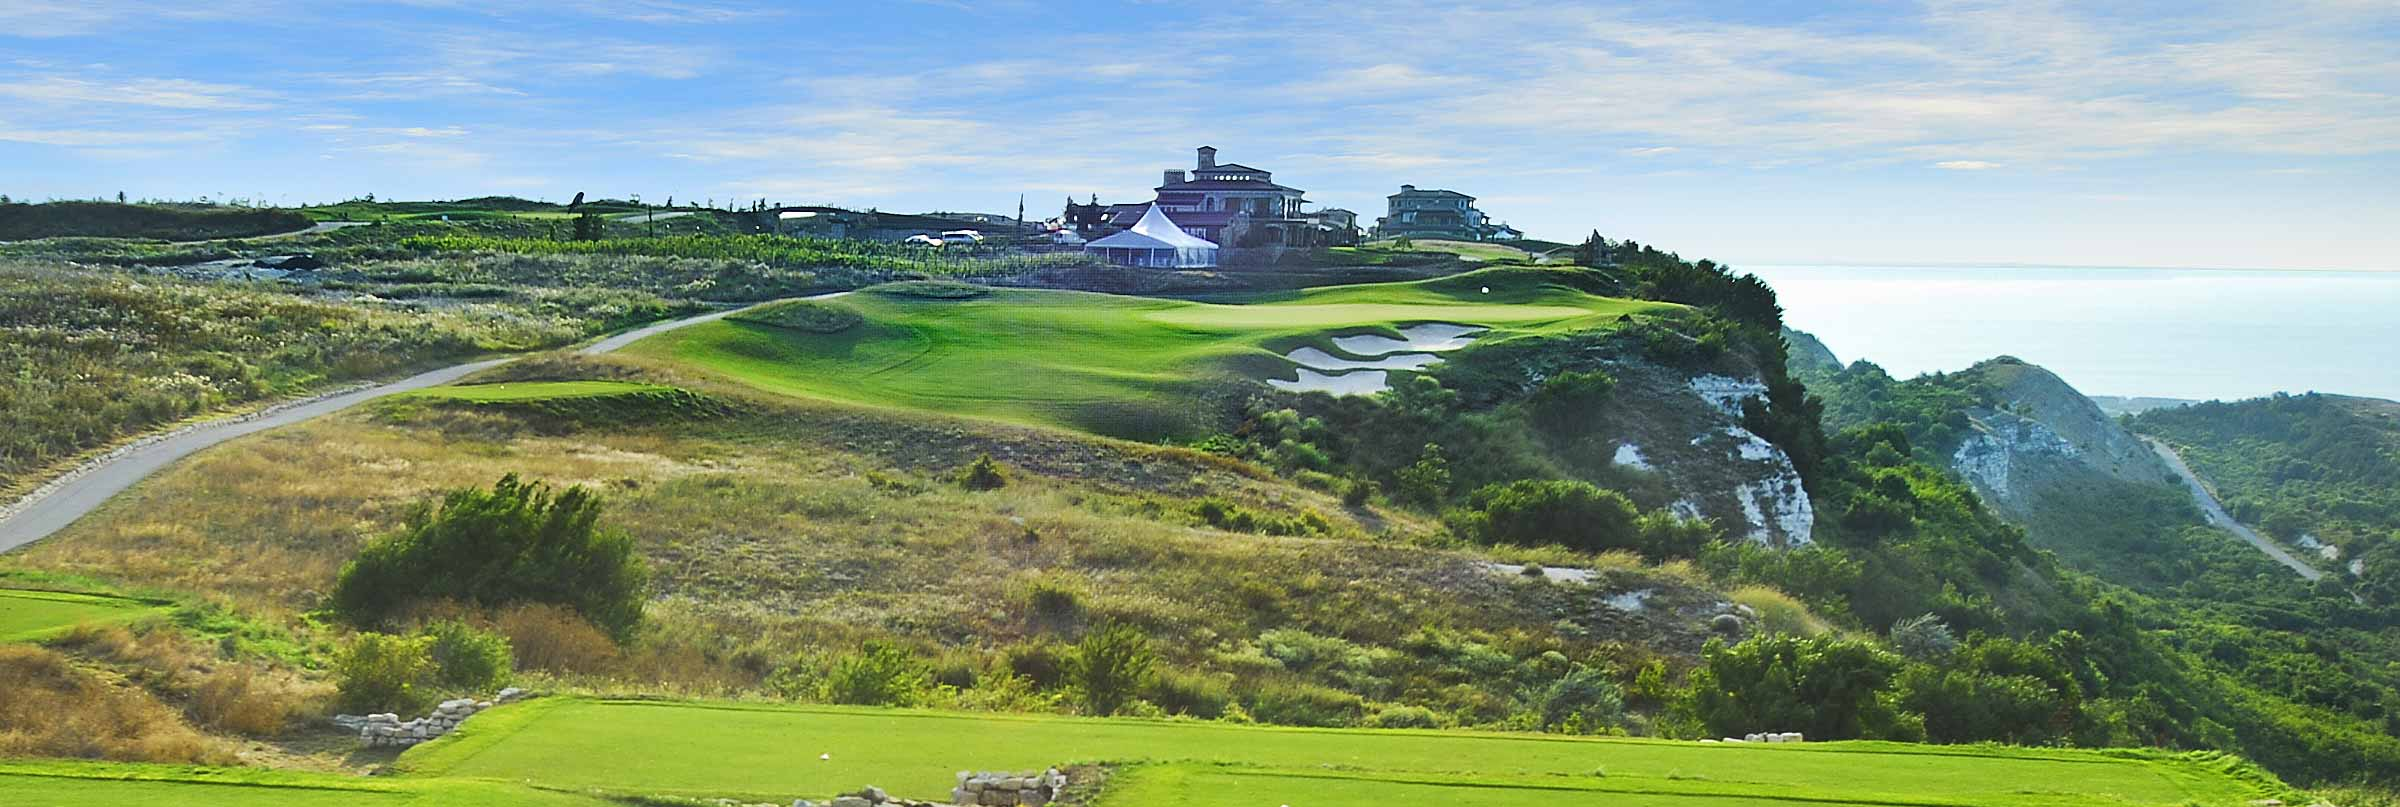 BlackSeaRama Golf & Villas 2018 - 7 nights, 5 green fees